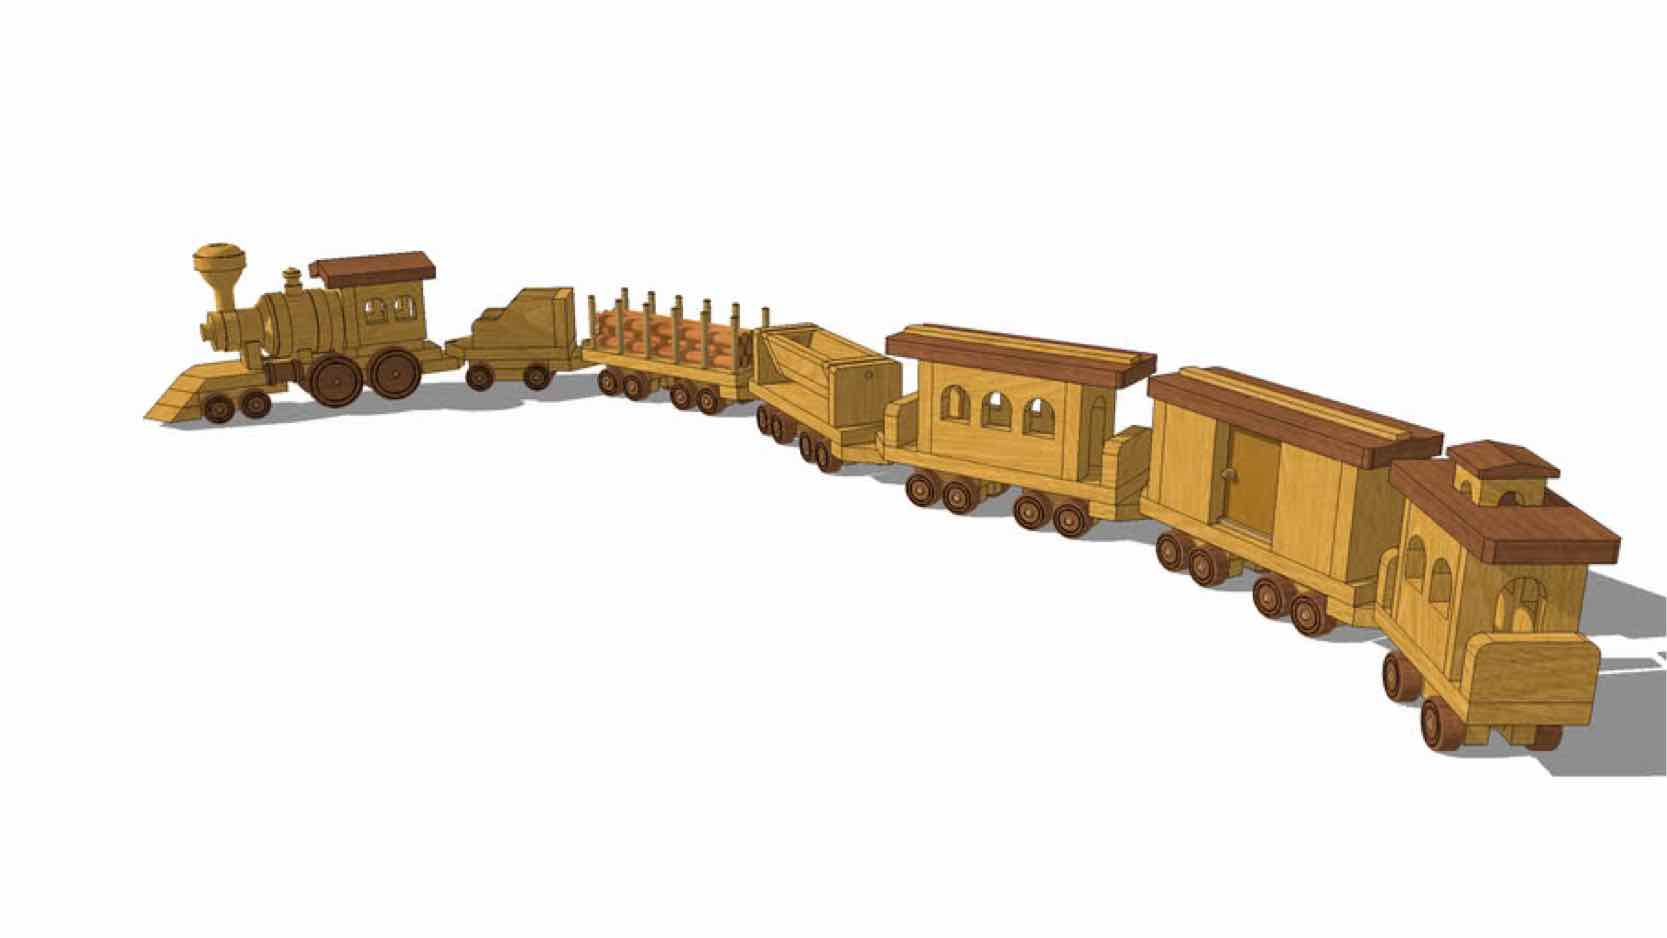 toys,trains,models,sketchup,Google 3D,3-D warehouse,childrens,childs,kids,wooden,drawings,free woodworking plans,projects,do it yourself,woodworkers